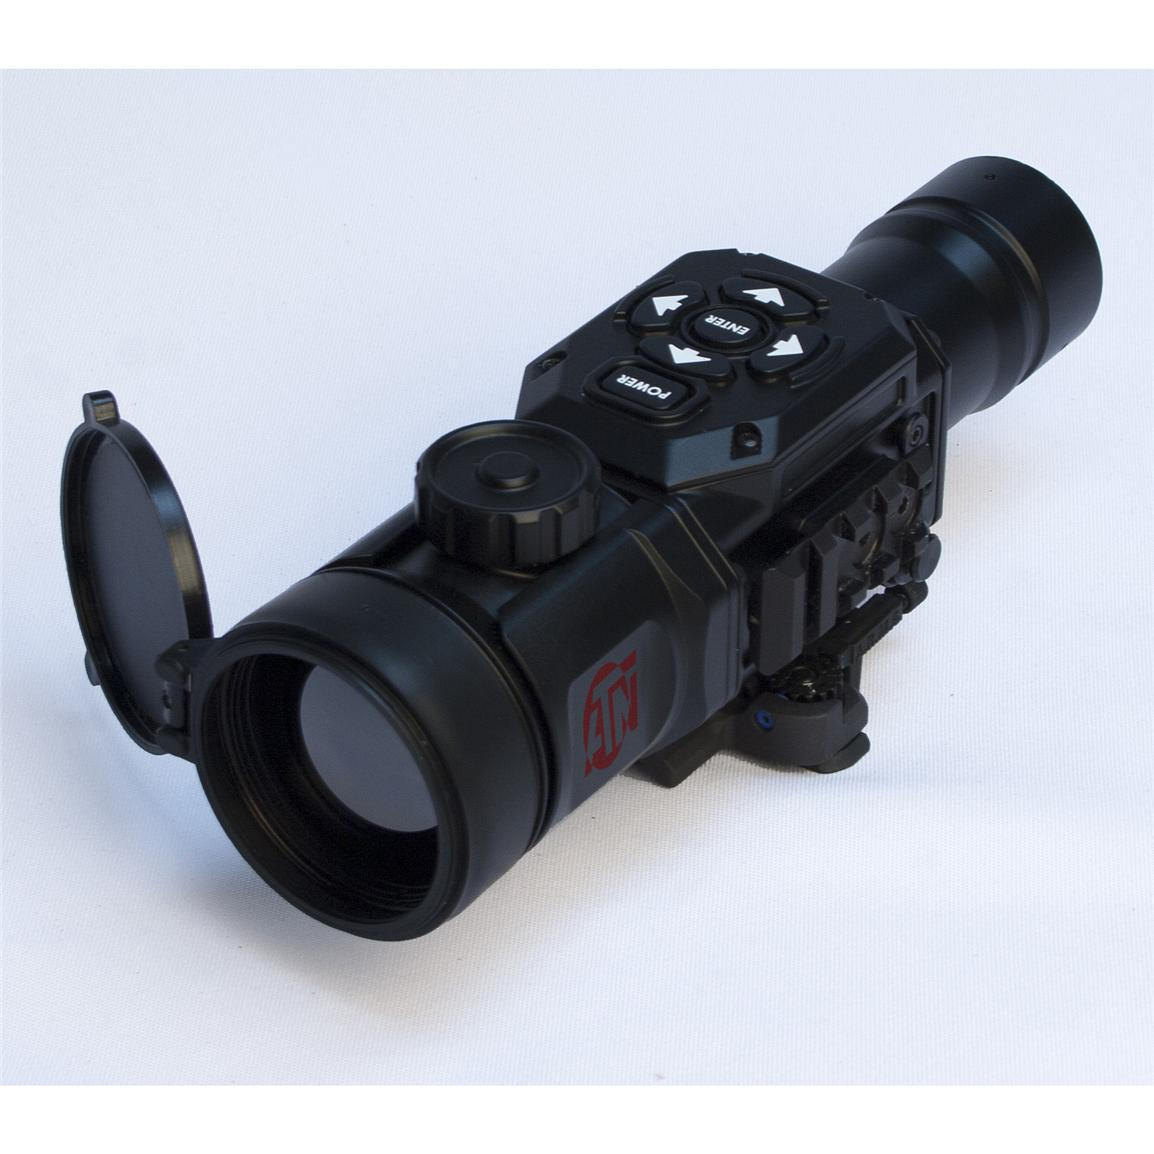 ATN® TICO-336B 30Hz Thermal Imaging Clip-on